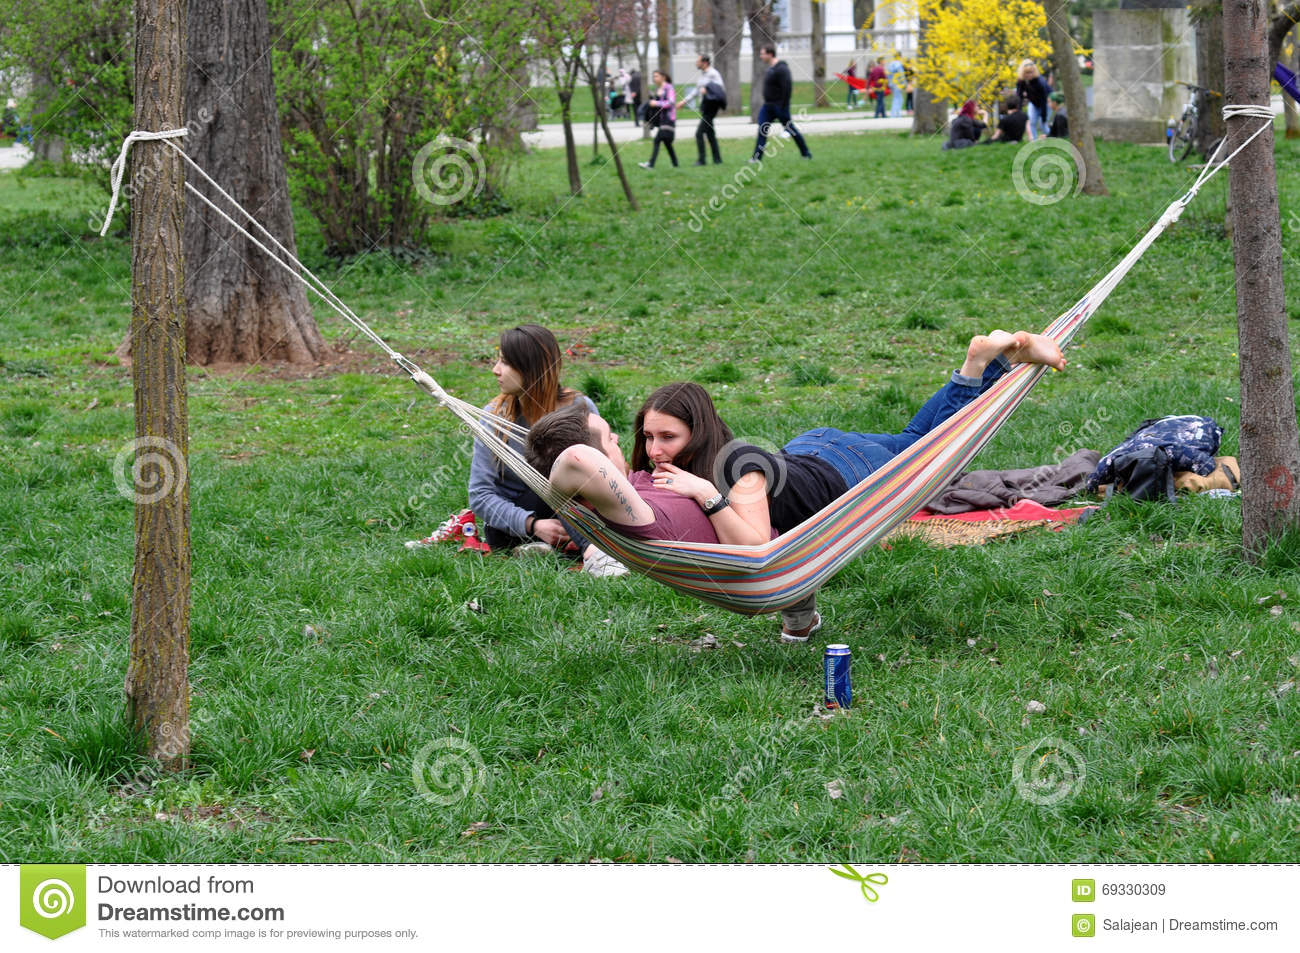 https://thumbs.dreamstime.com/z/young-people-relaxing-hammocks-park-cluj-napoca-romania-april-central-big-hammock-day-69330309.jpg